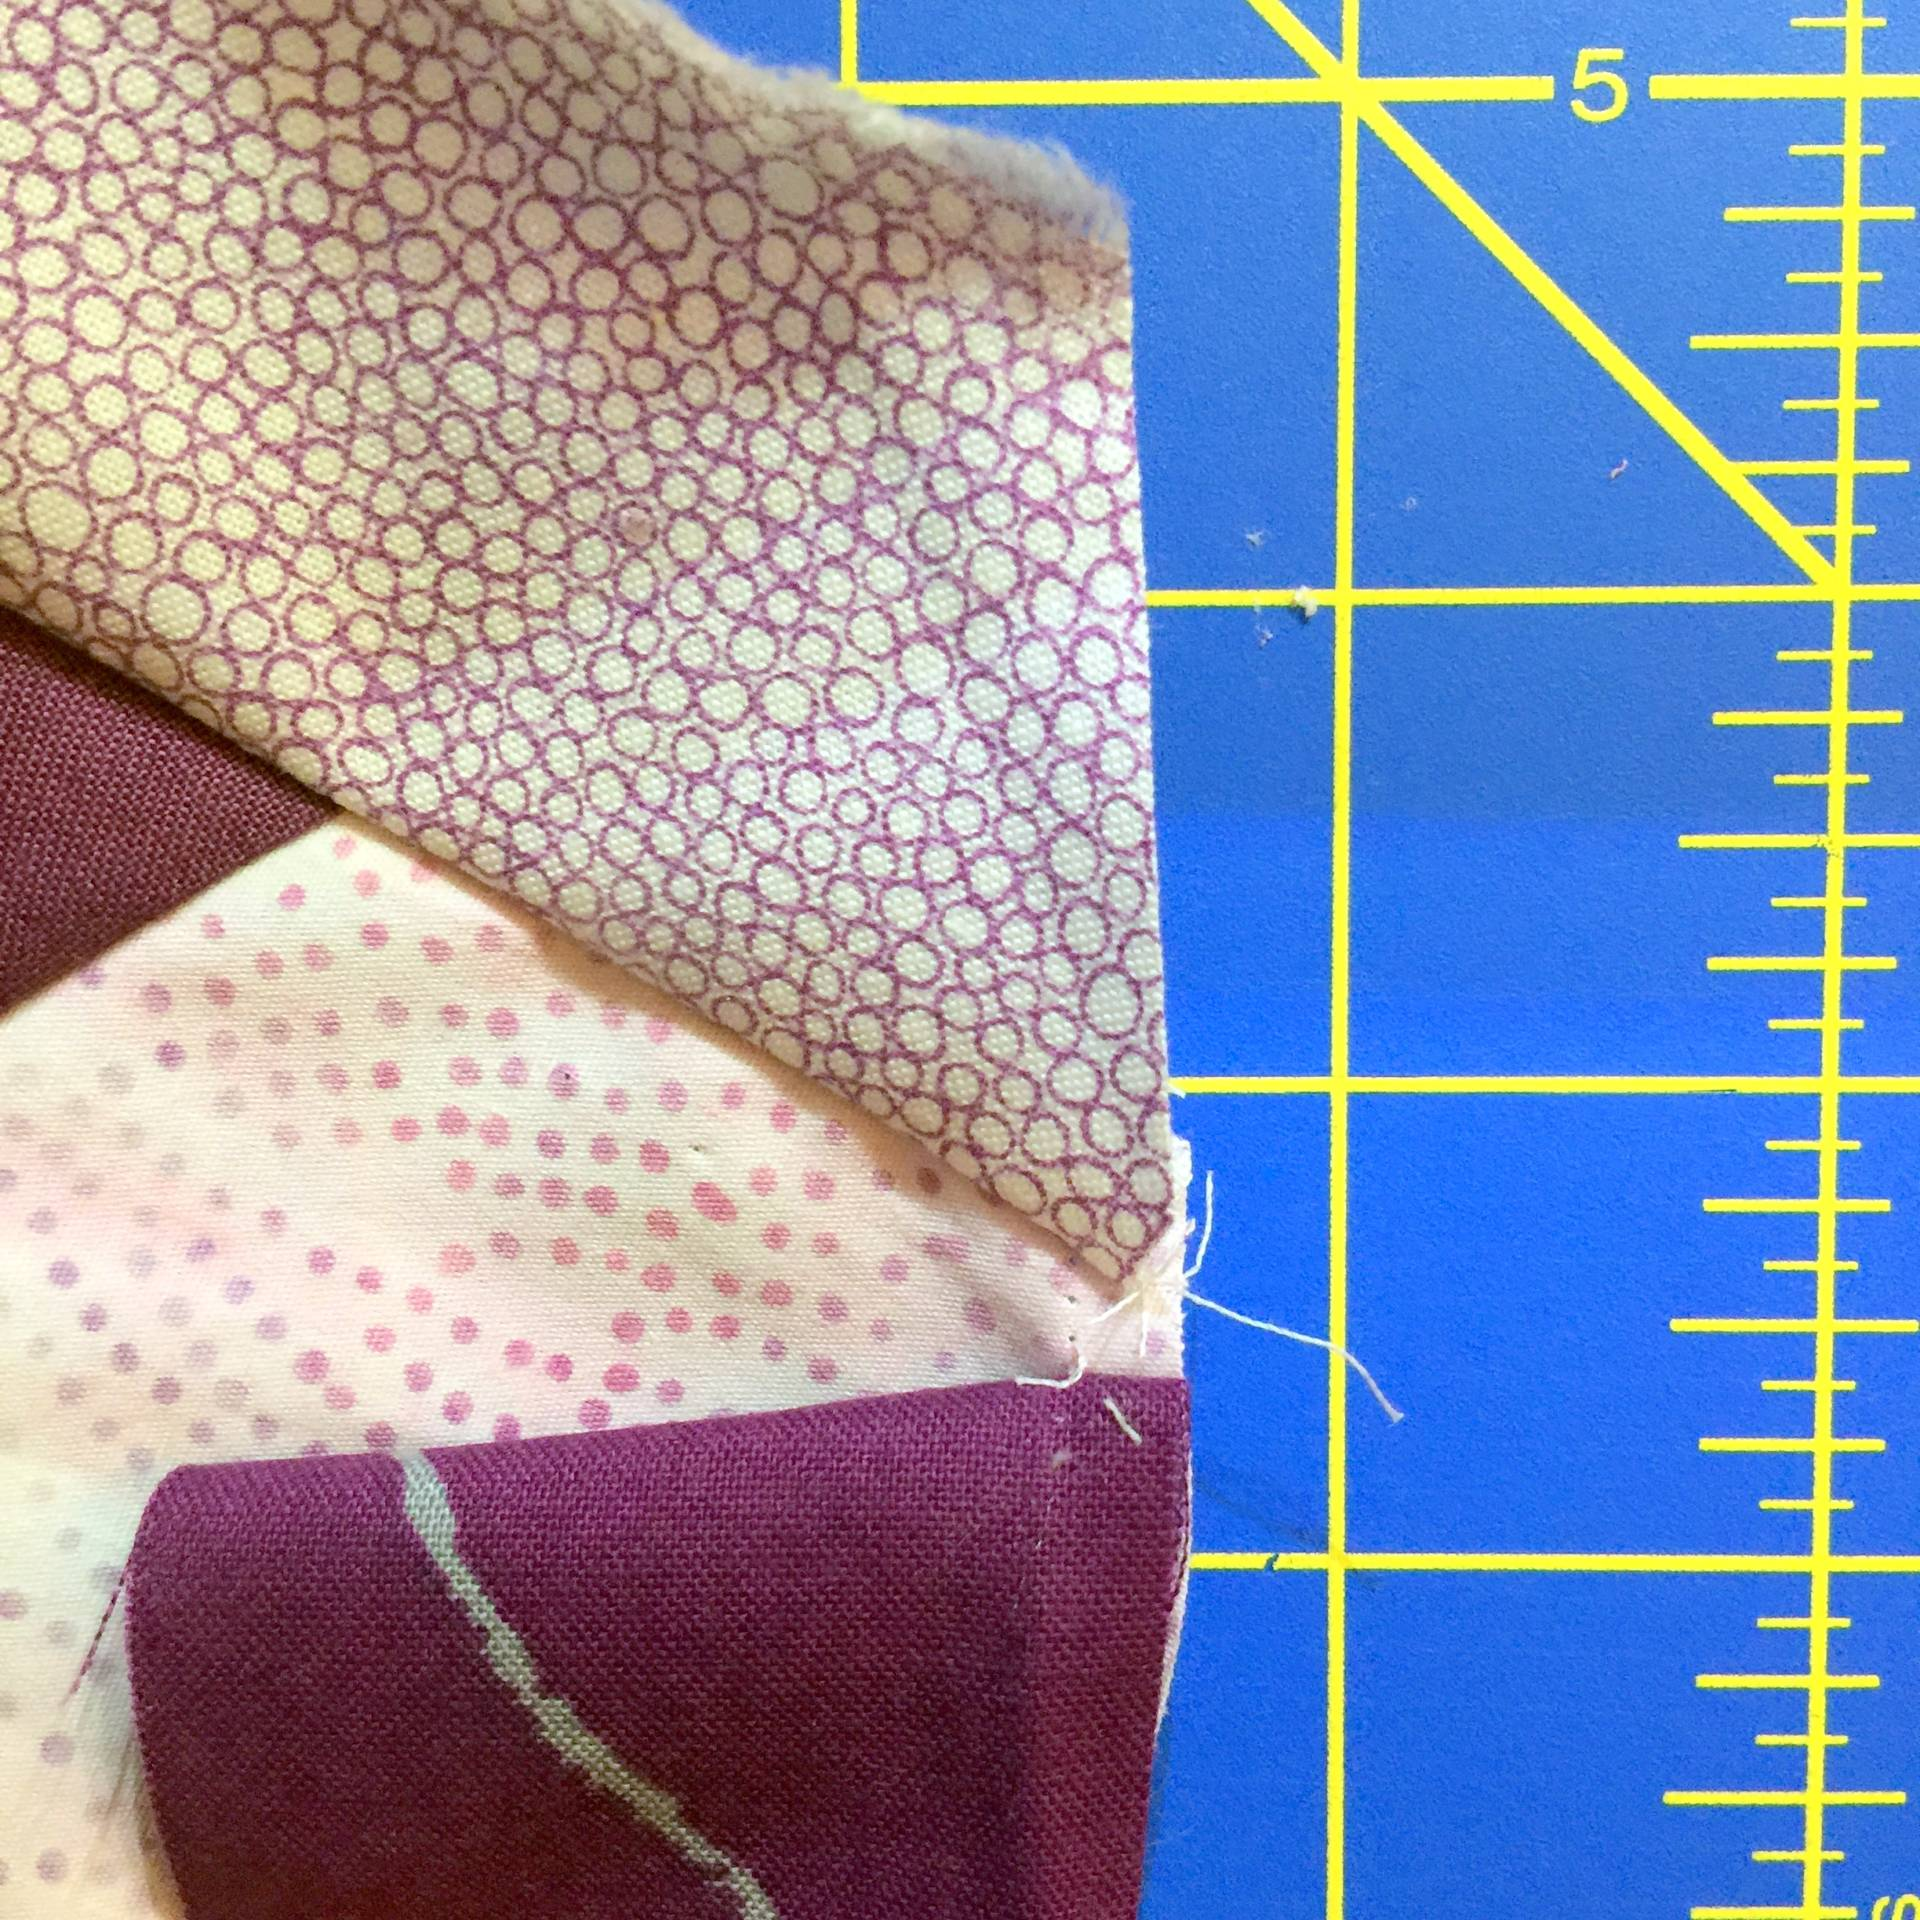 Always read the instructions before starting a tutorial so you don't need to rip out seams later!